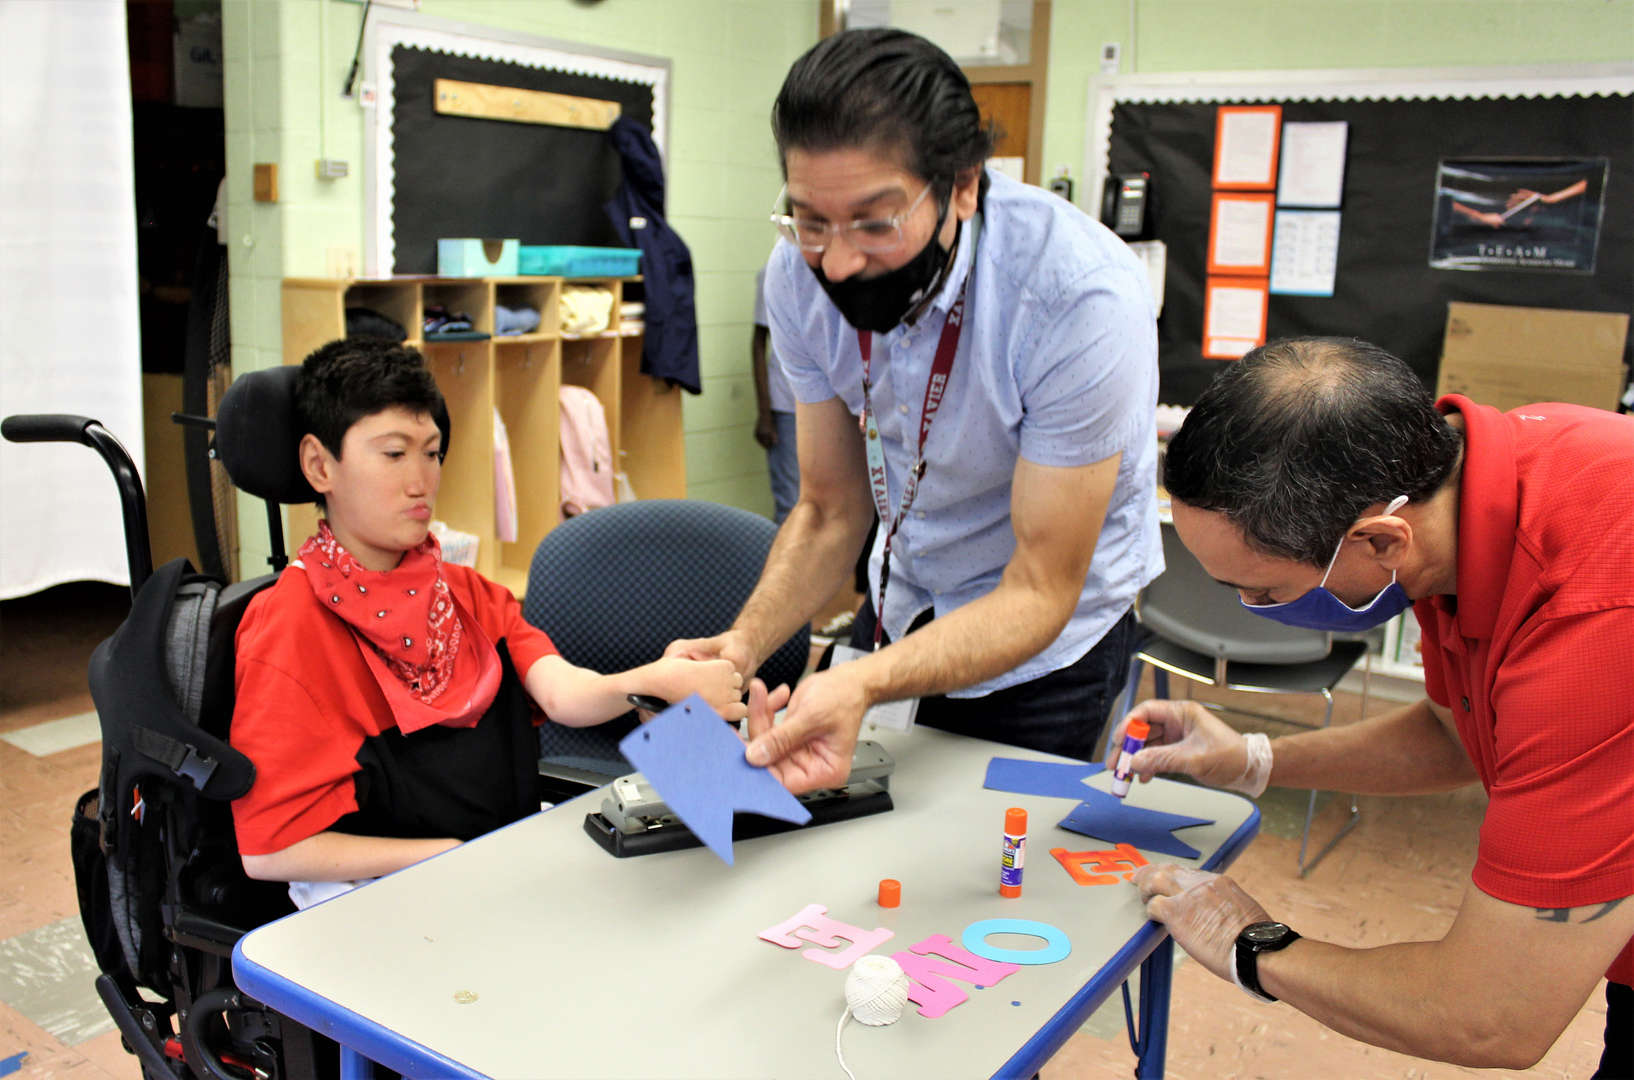 A teacher assists a male student using a feather-touch hole punch.